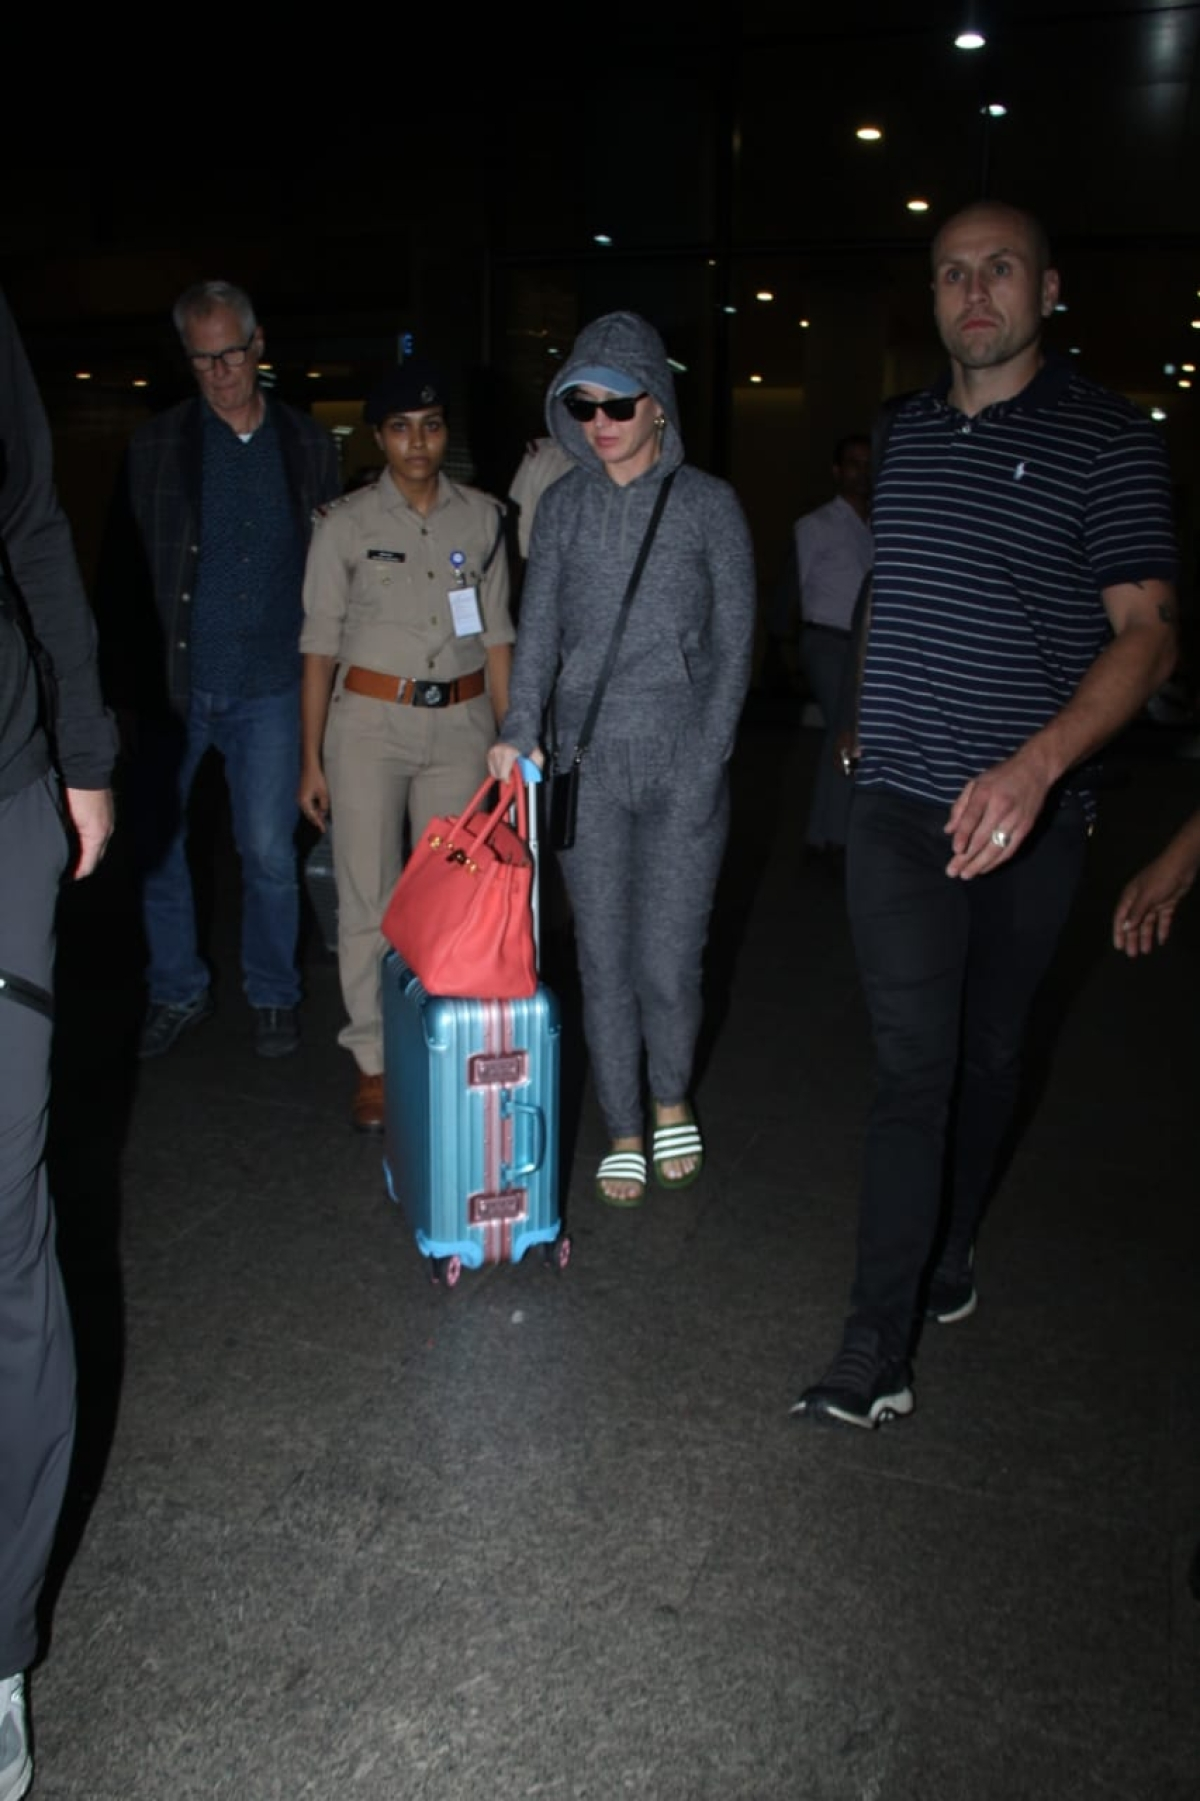 Katy Perry arrives in Mumbai and is all set to 'ROAR' at the OnePlus Music Festival